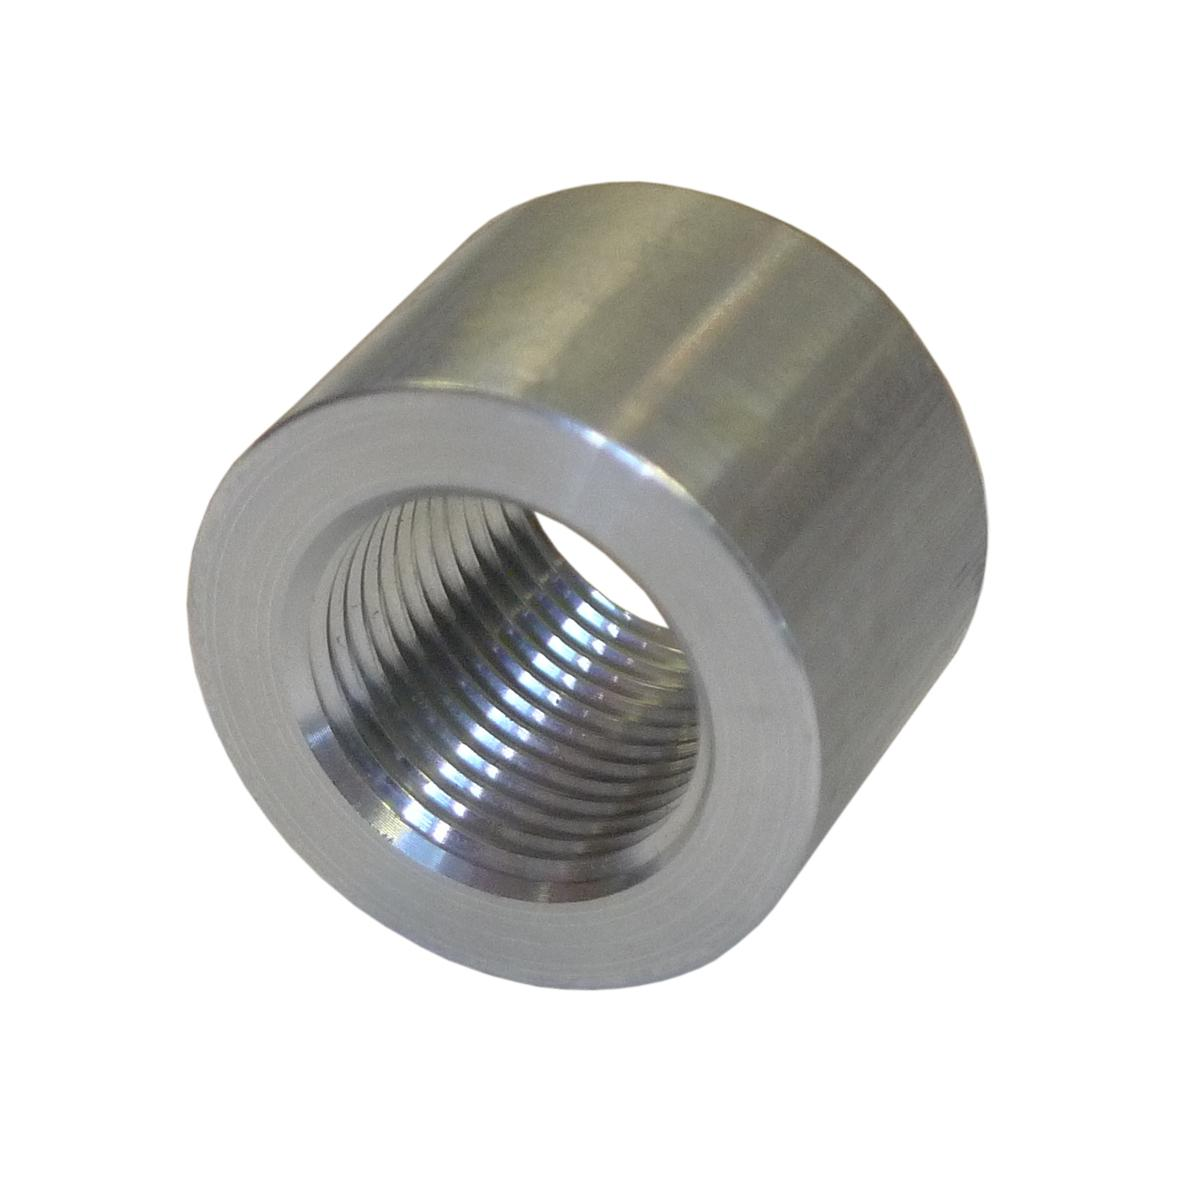 1 4 Inch Bsp Female Fitting Weld On Fitting Alloy